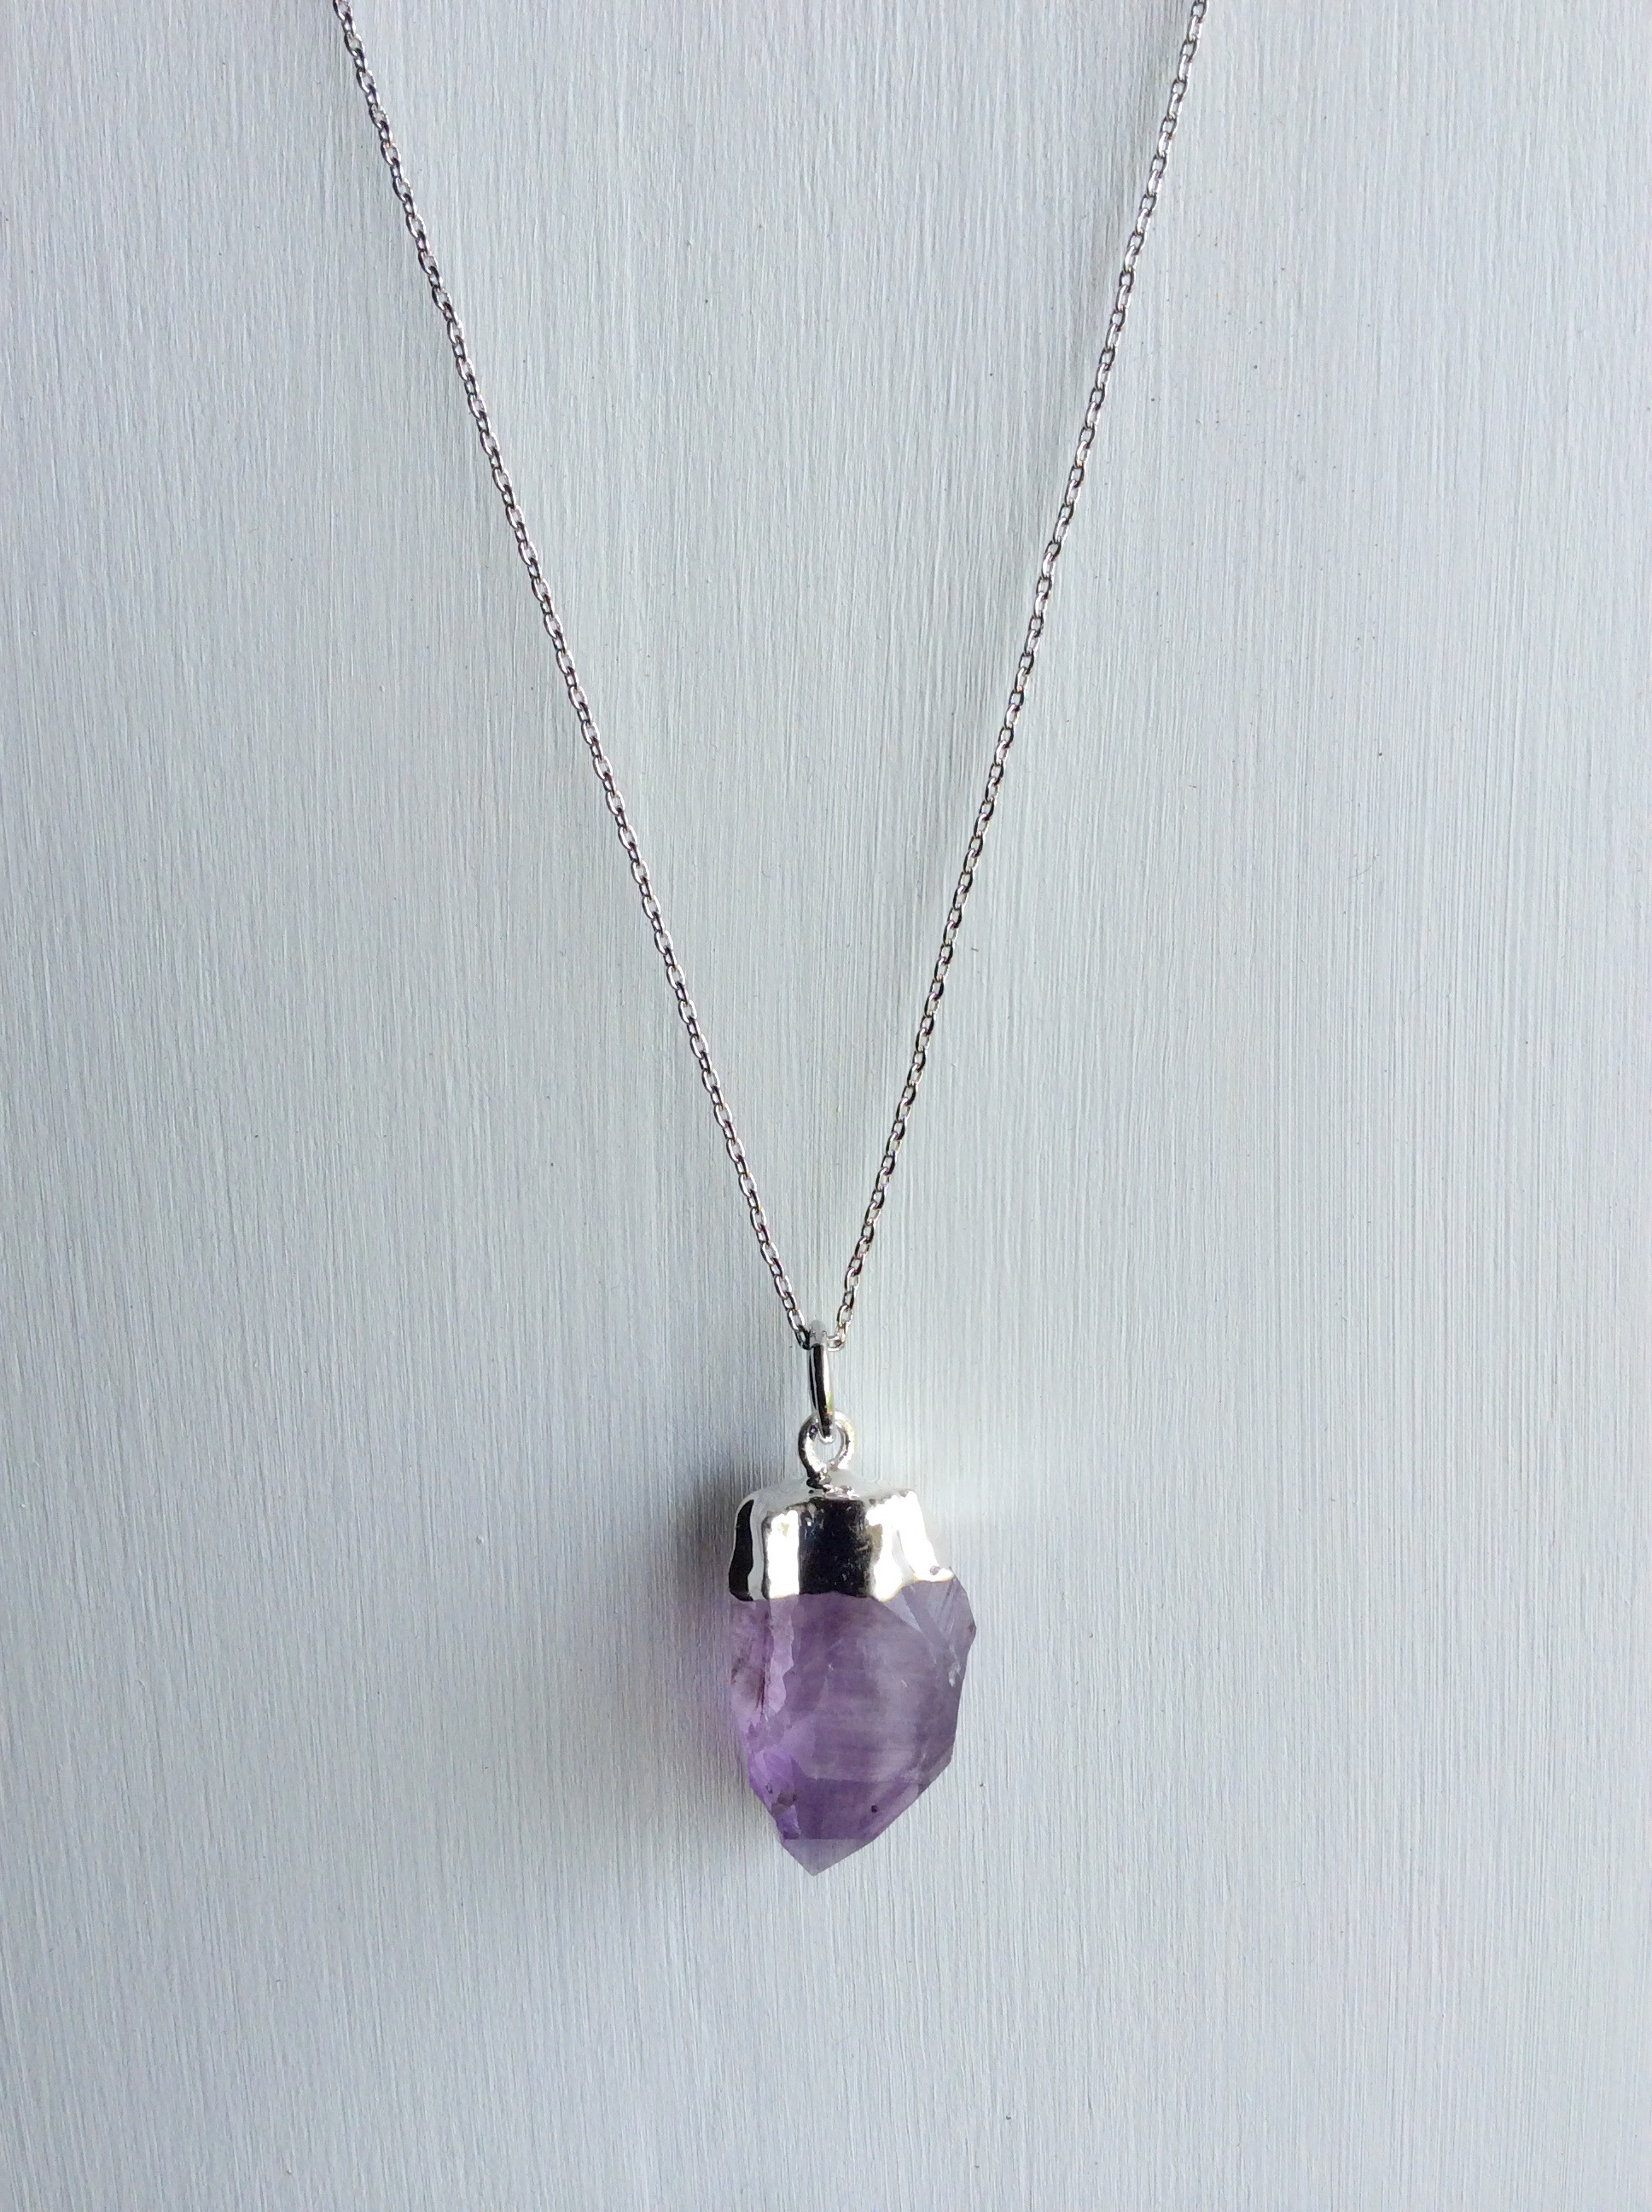 necklace amethyst slice pendant raw crystal geode druzy